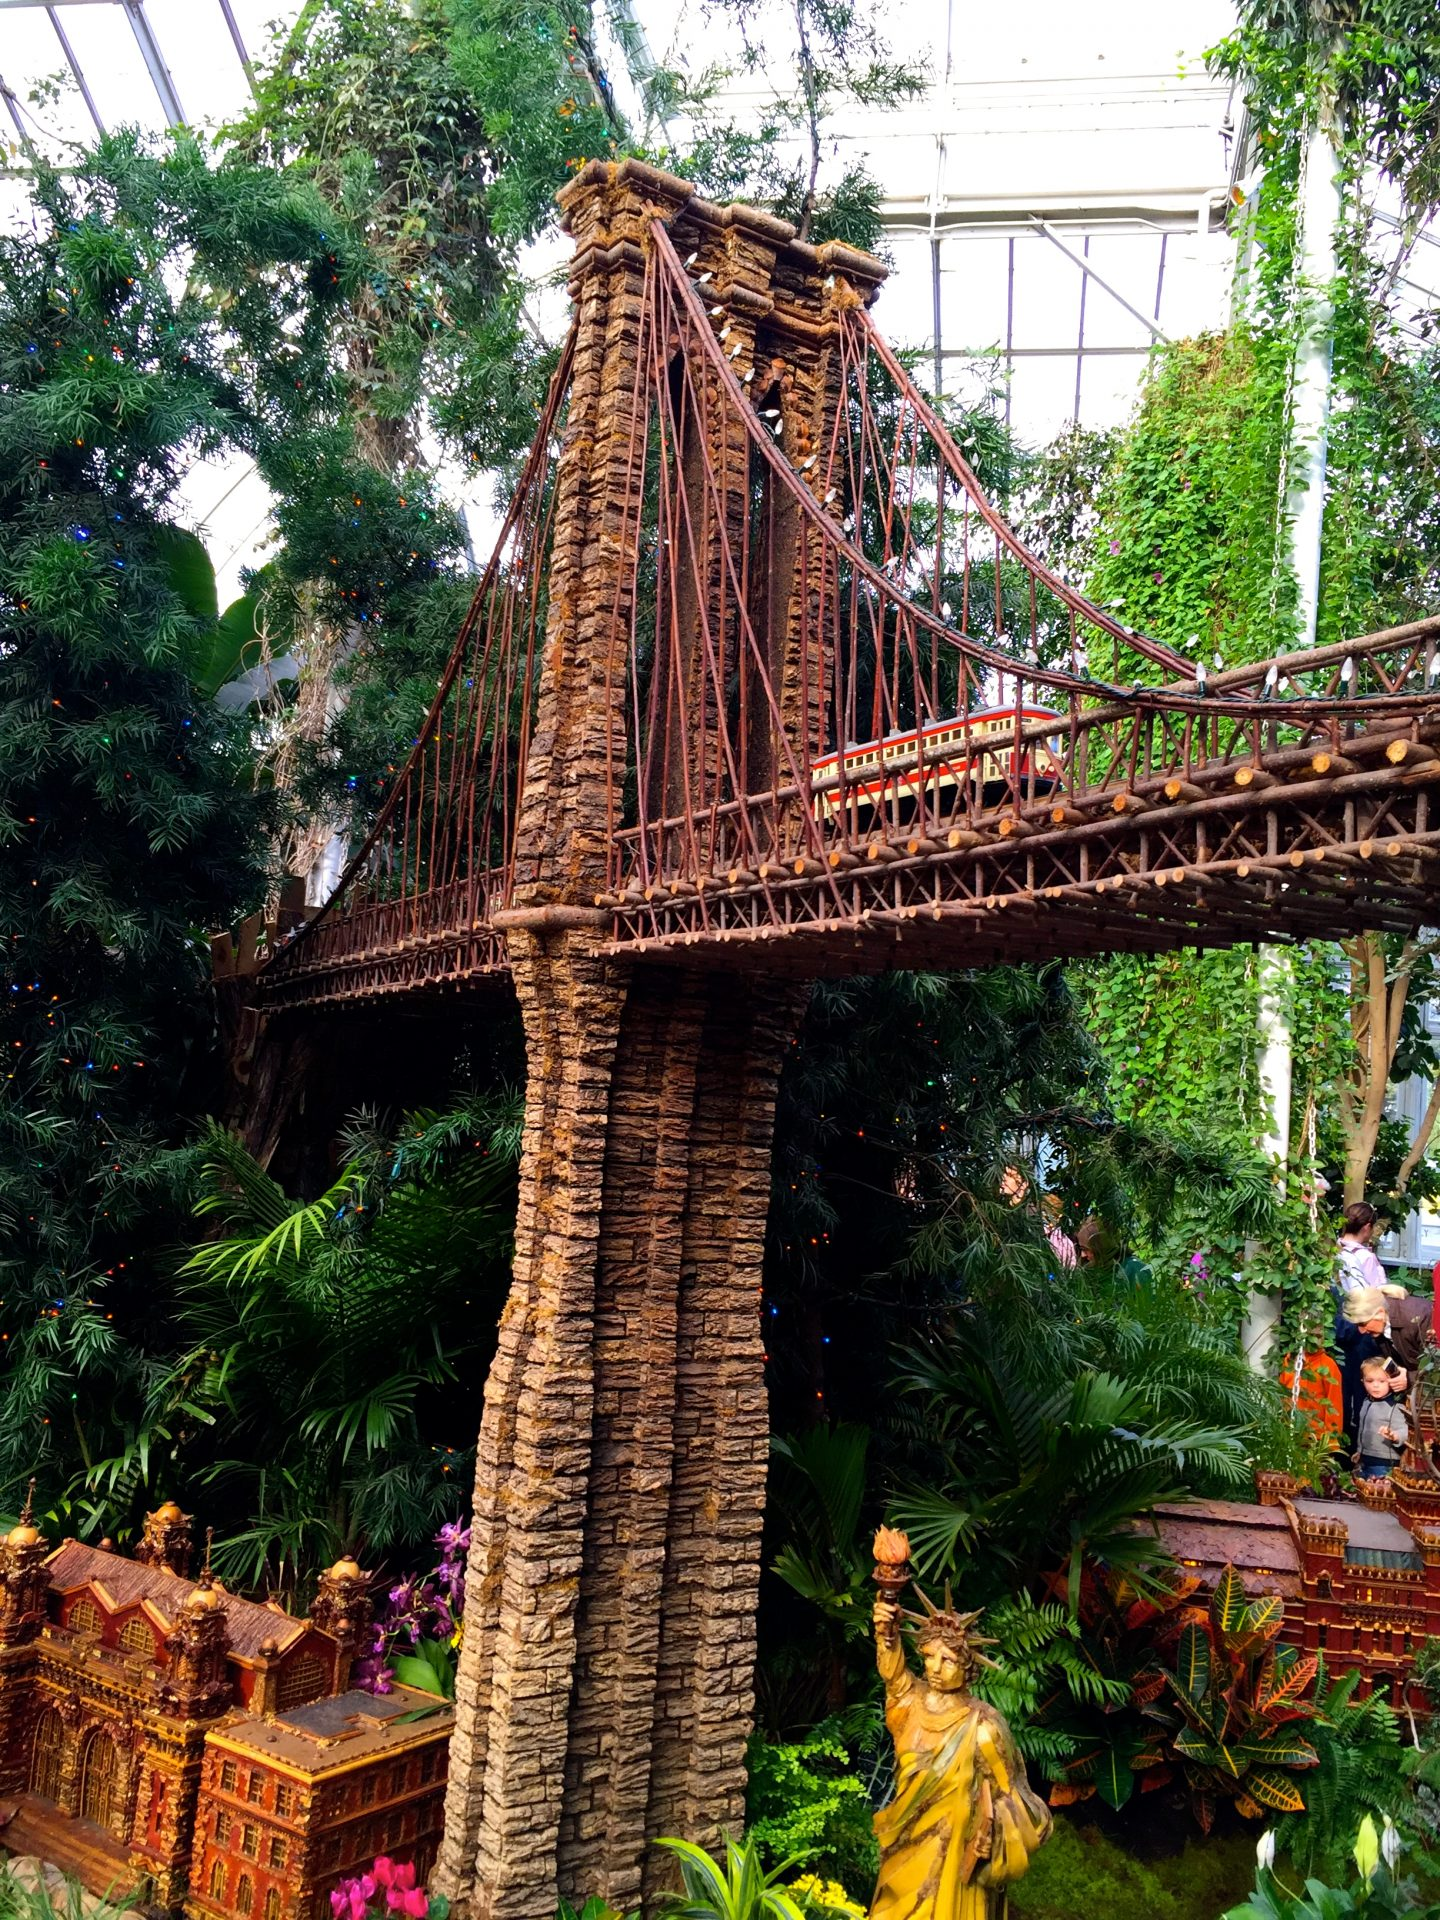 Guide to the holiday train show at the new york botanical garden for Bronx botanical garden train show